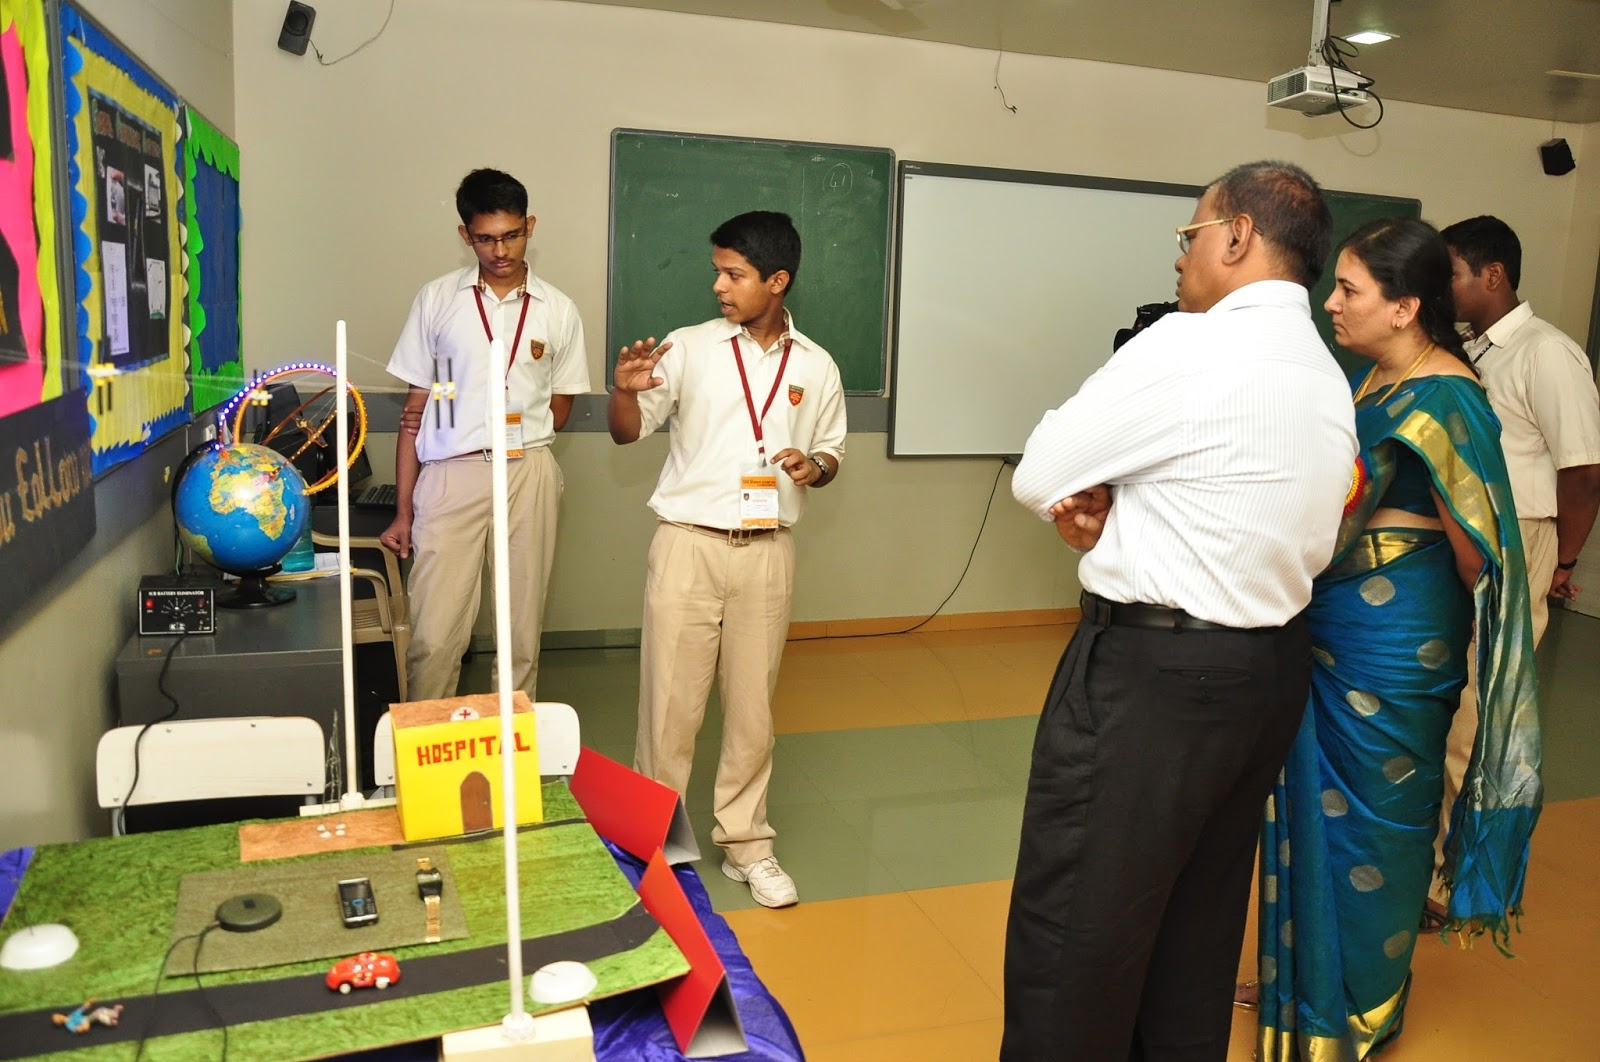 D Exhibition In Chennai : Anna nagar daily regional level cbse science exhibition